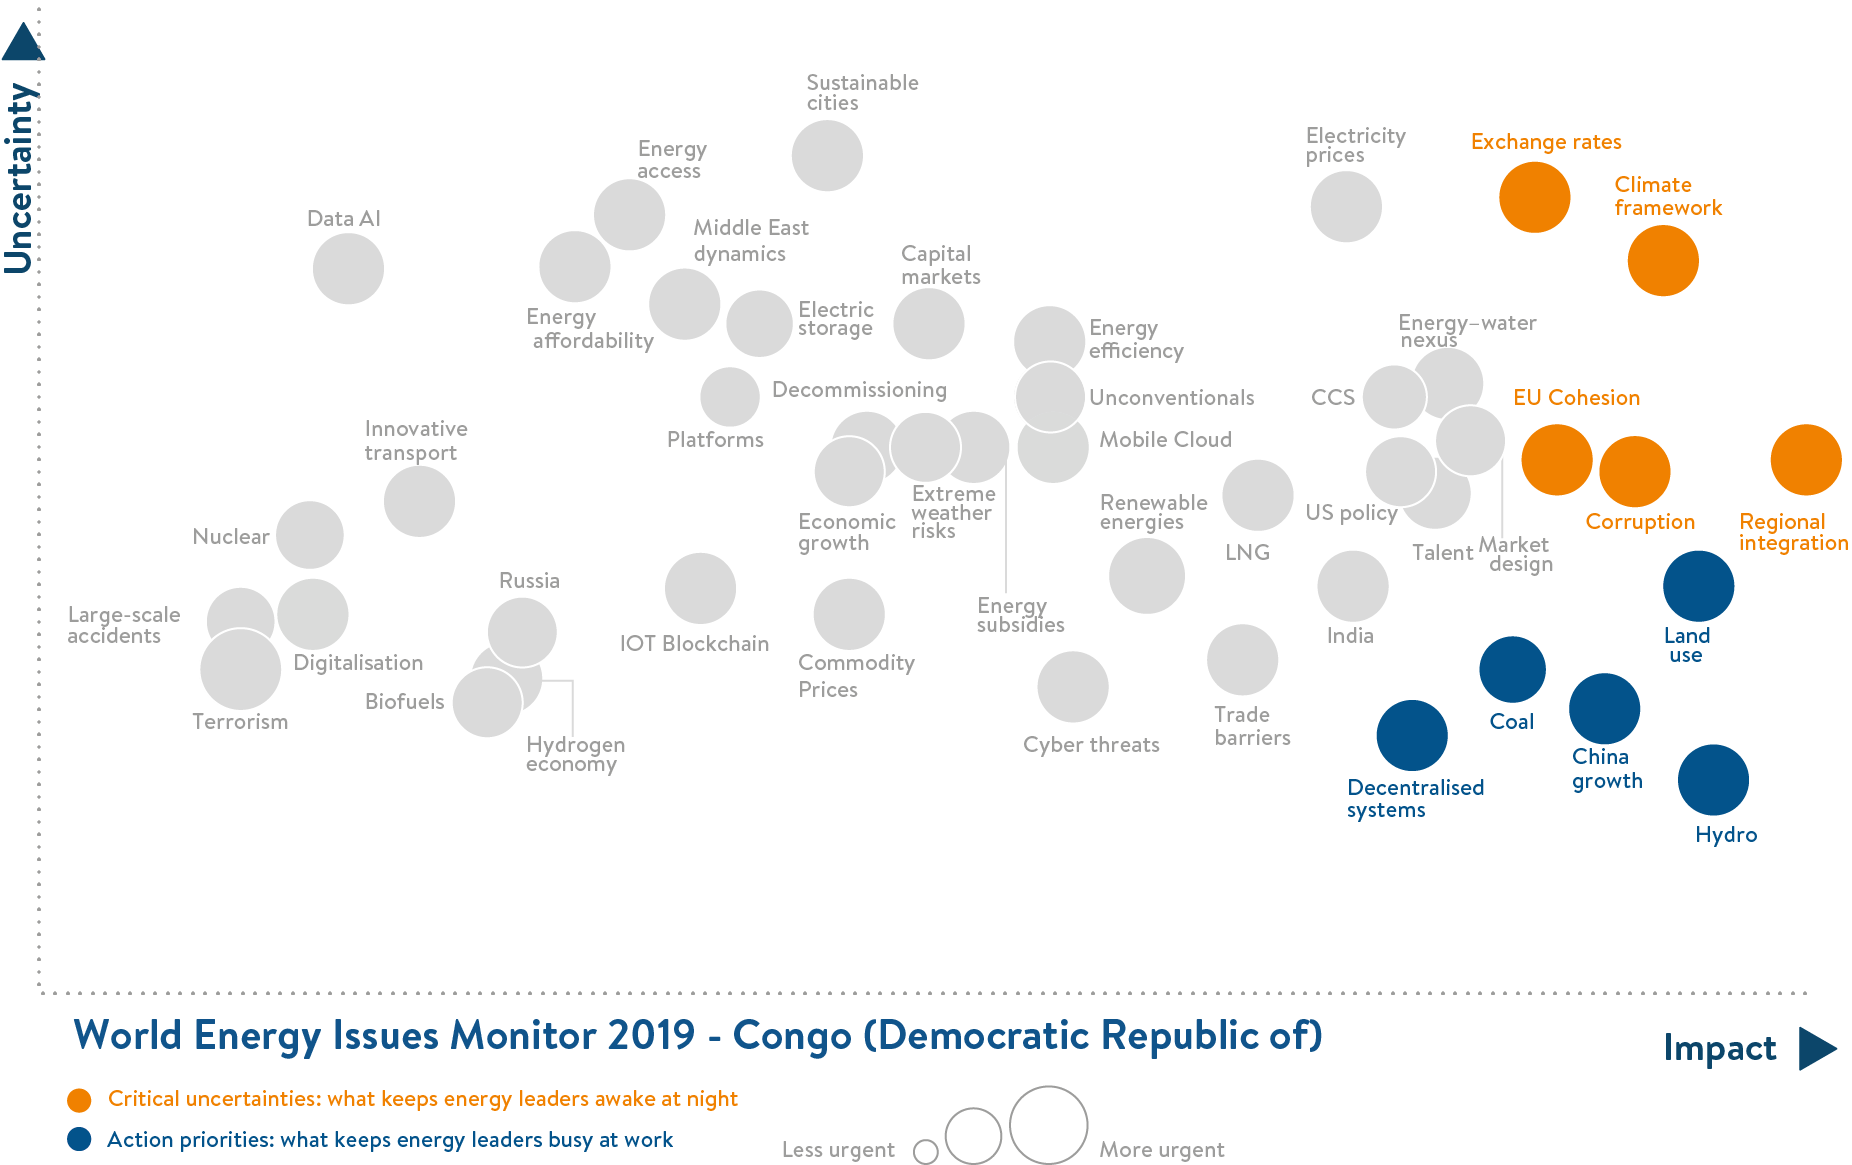 congo dr, critical uncertainties, action priorities